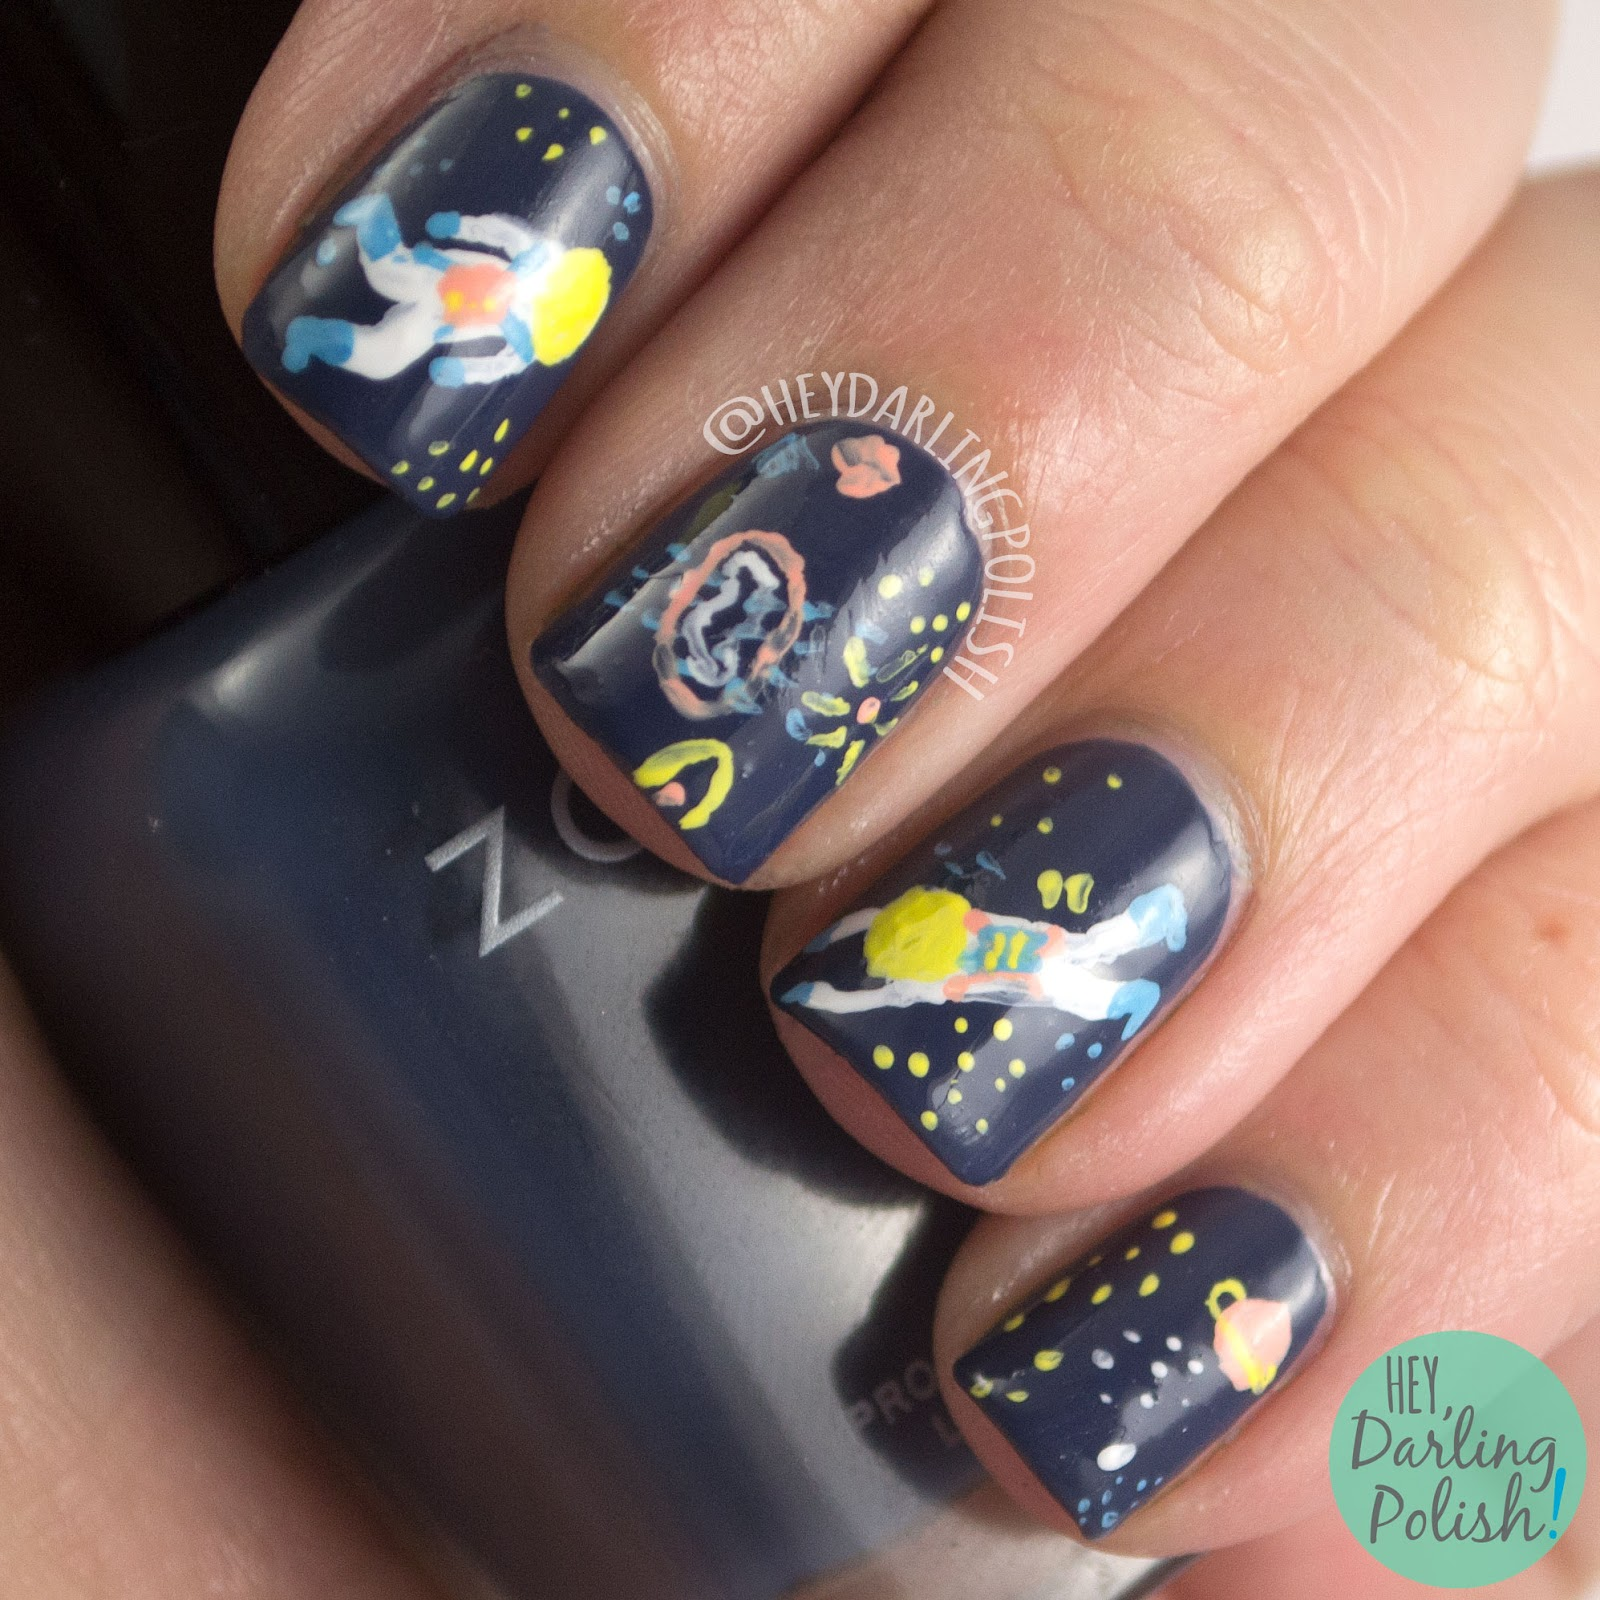 nails, nail art, nail polish, acrylic paint, pattern, freehand, astronauts, space, space nail art, hey darling polish, the nail art guild